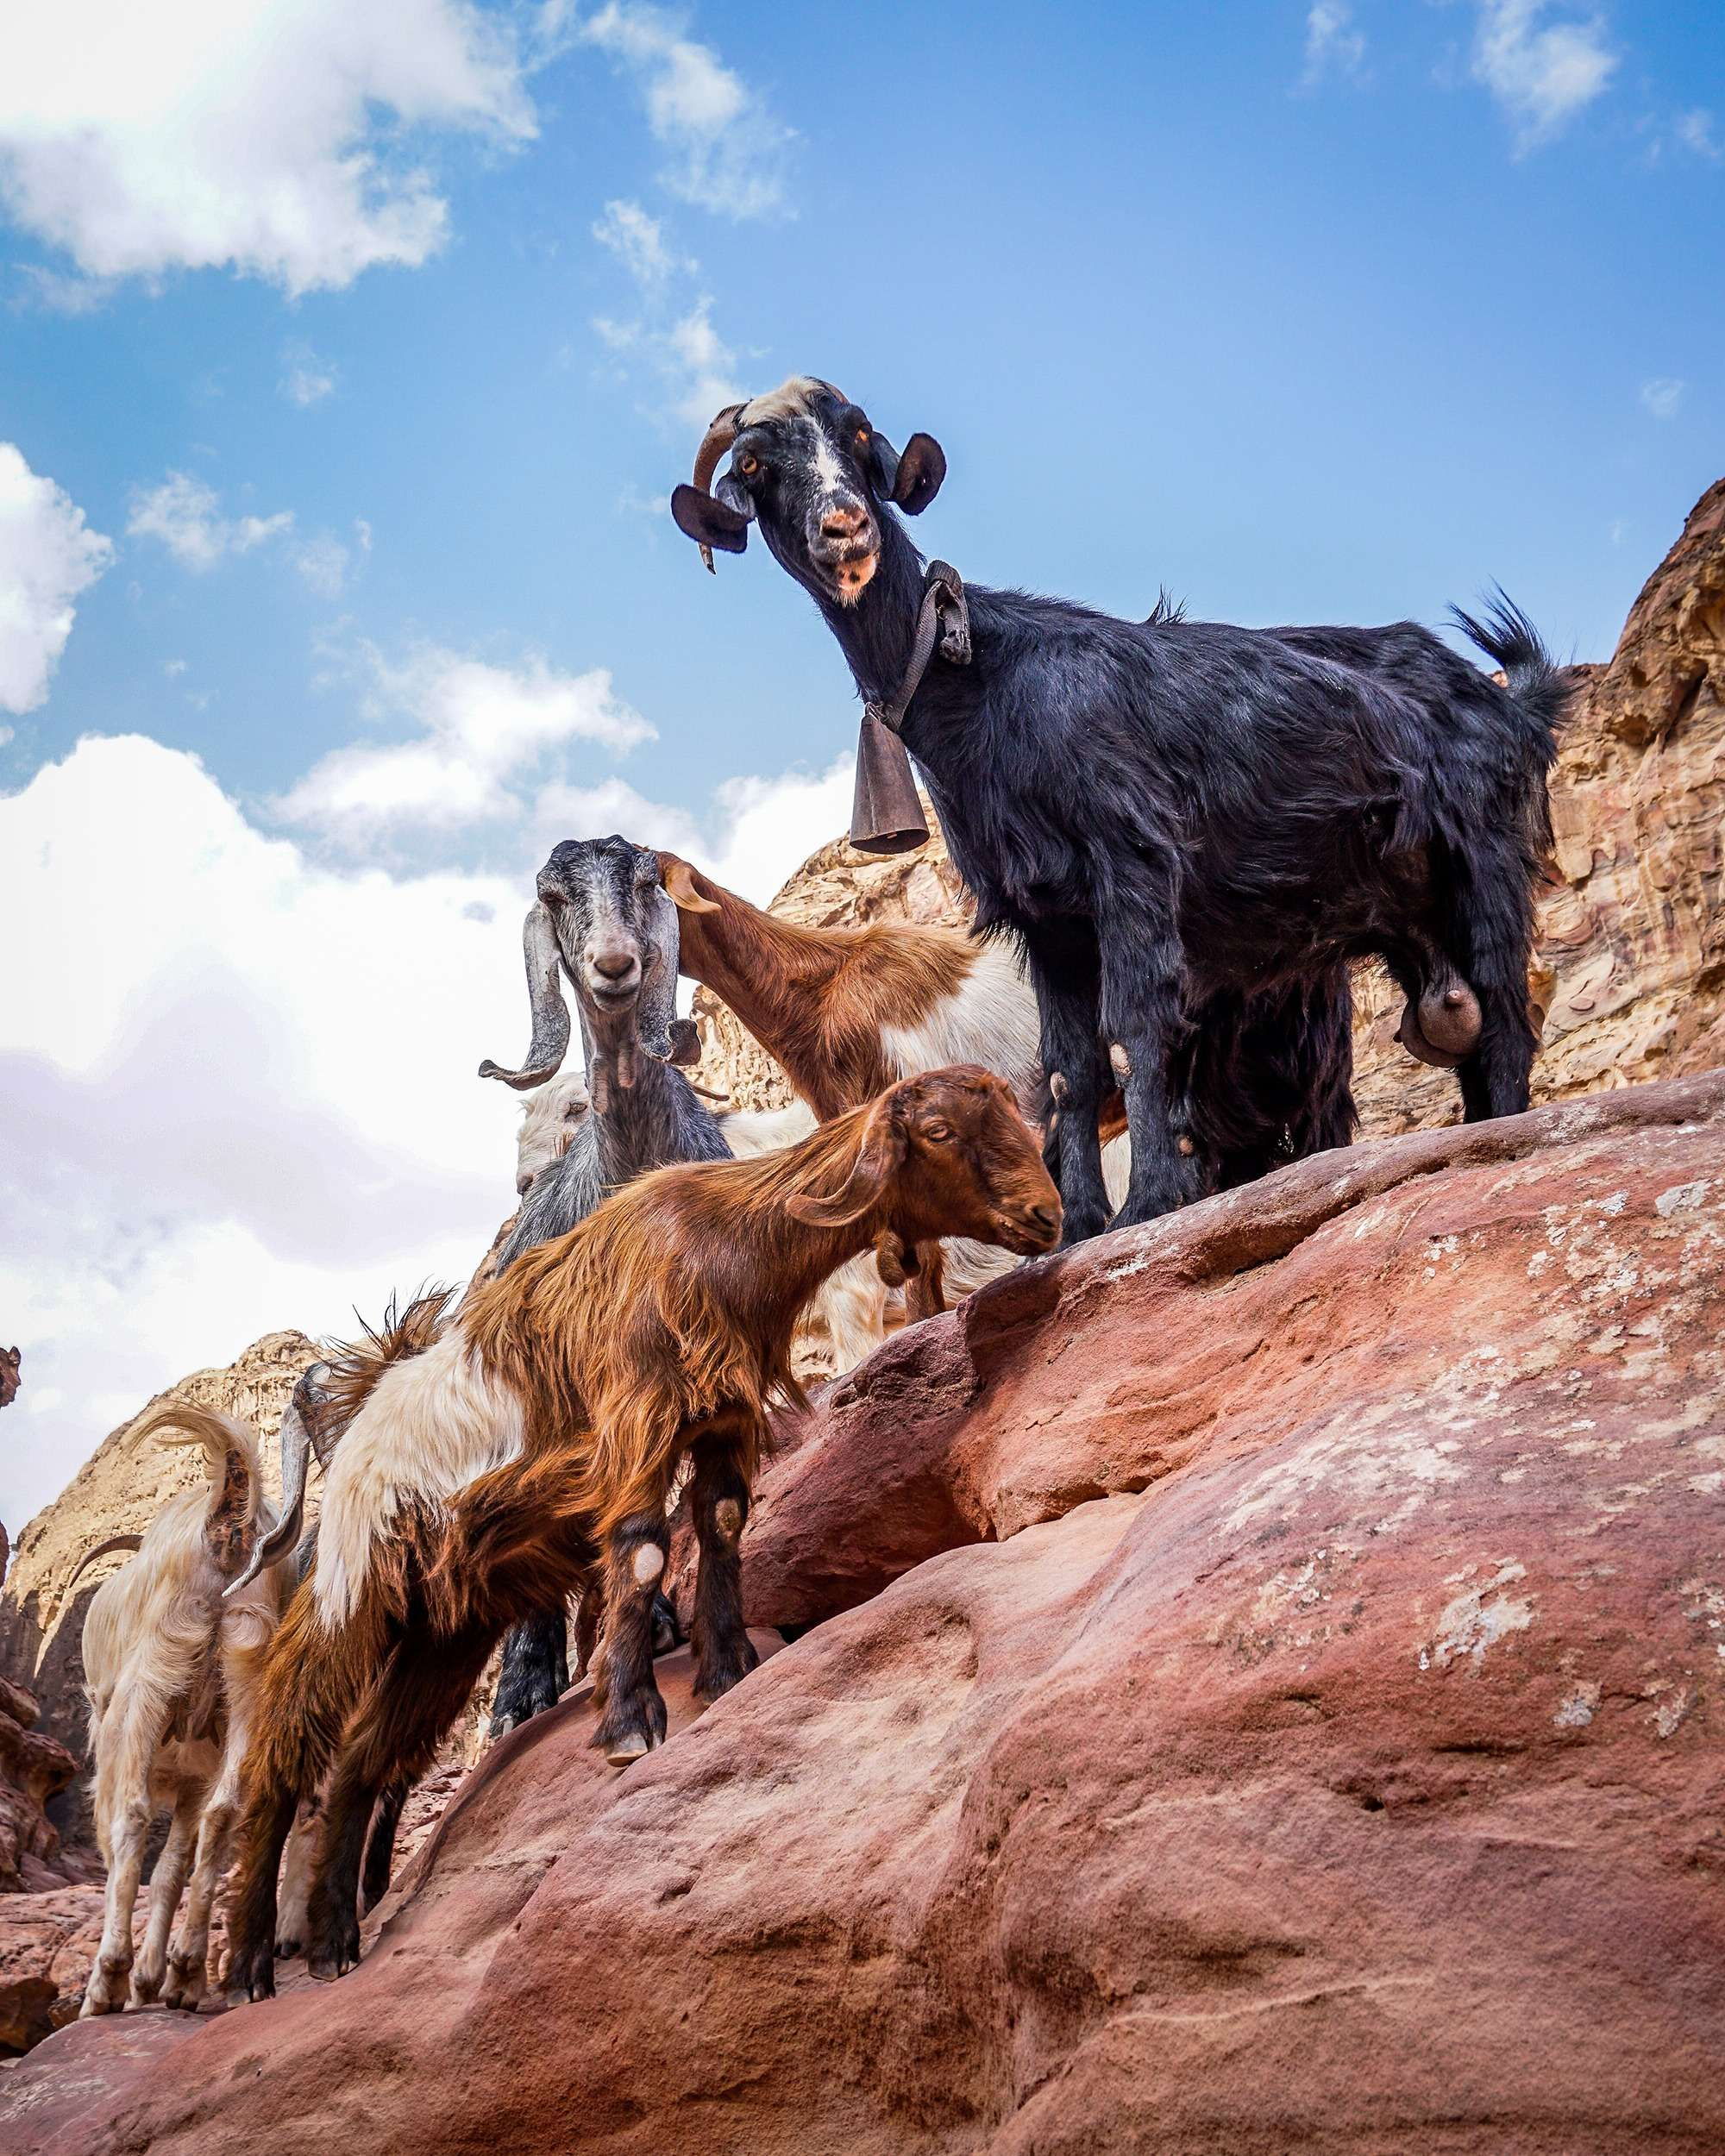 mountain goats gather on the side of the rocks at Petra